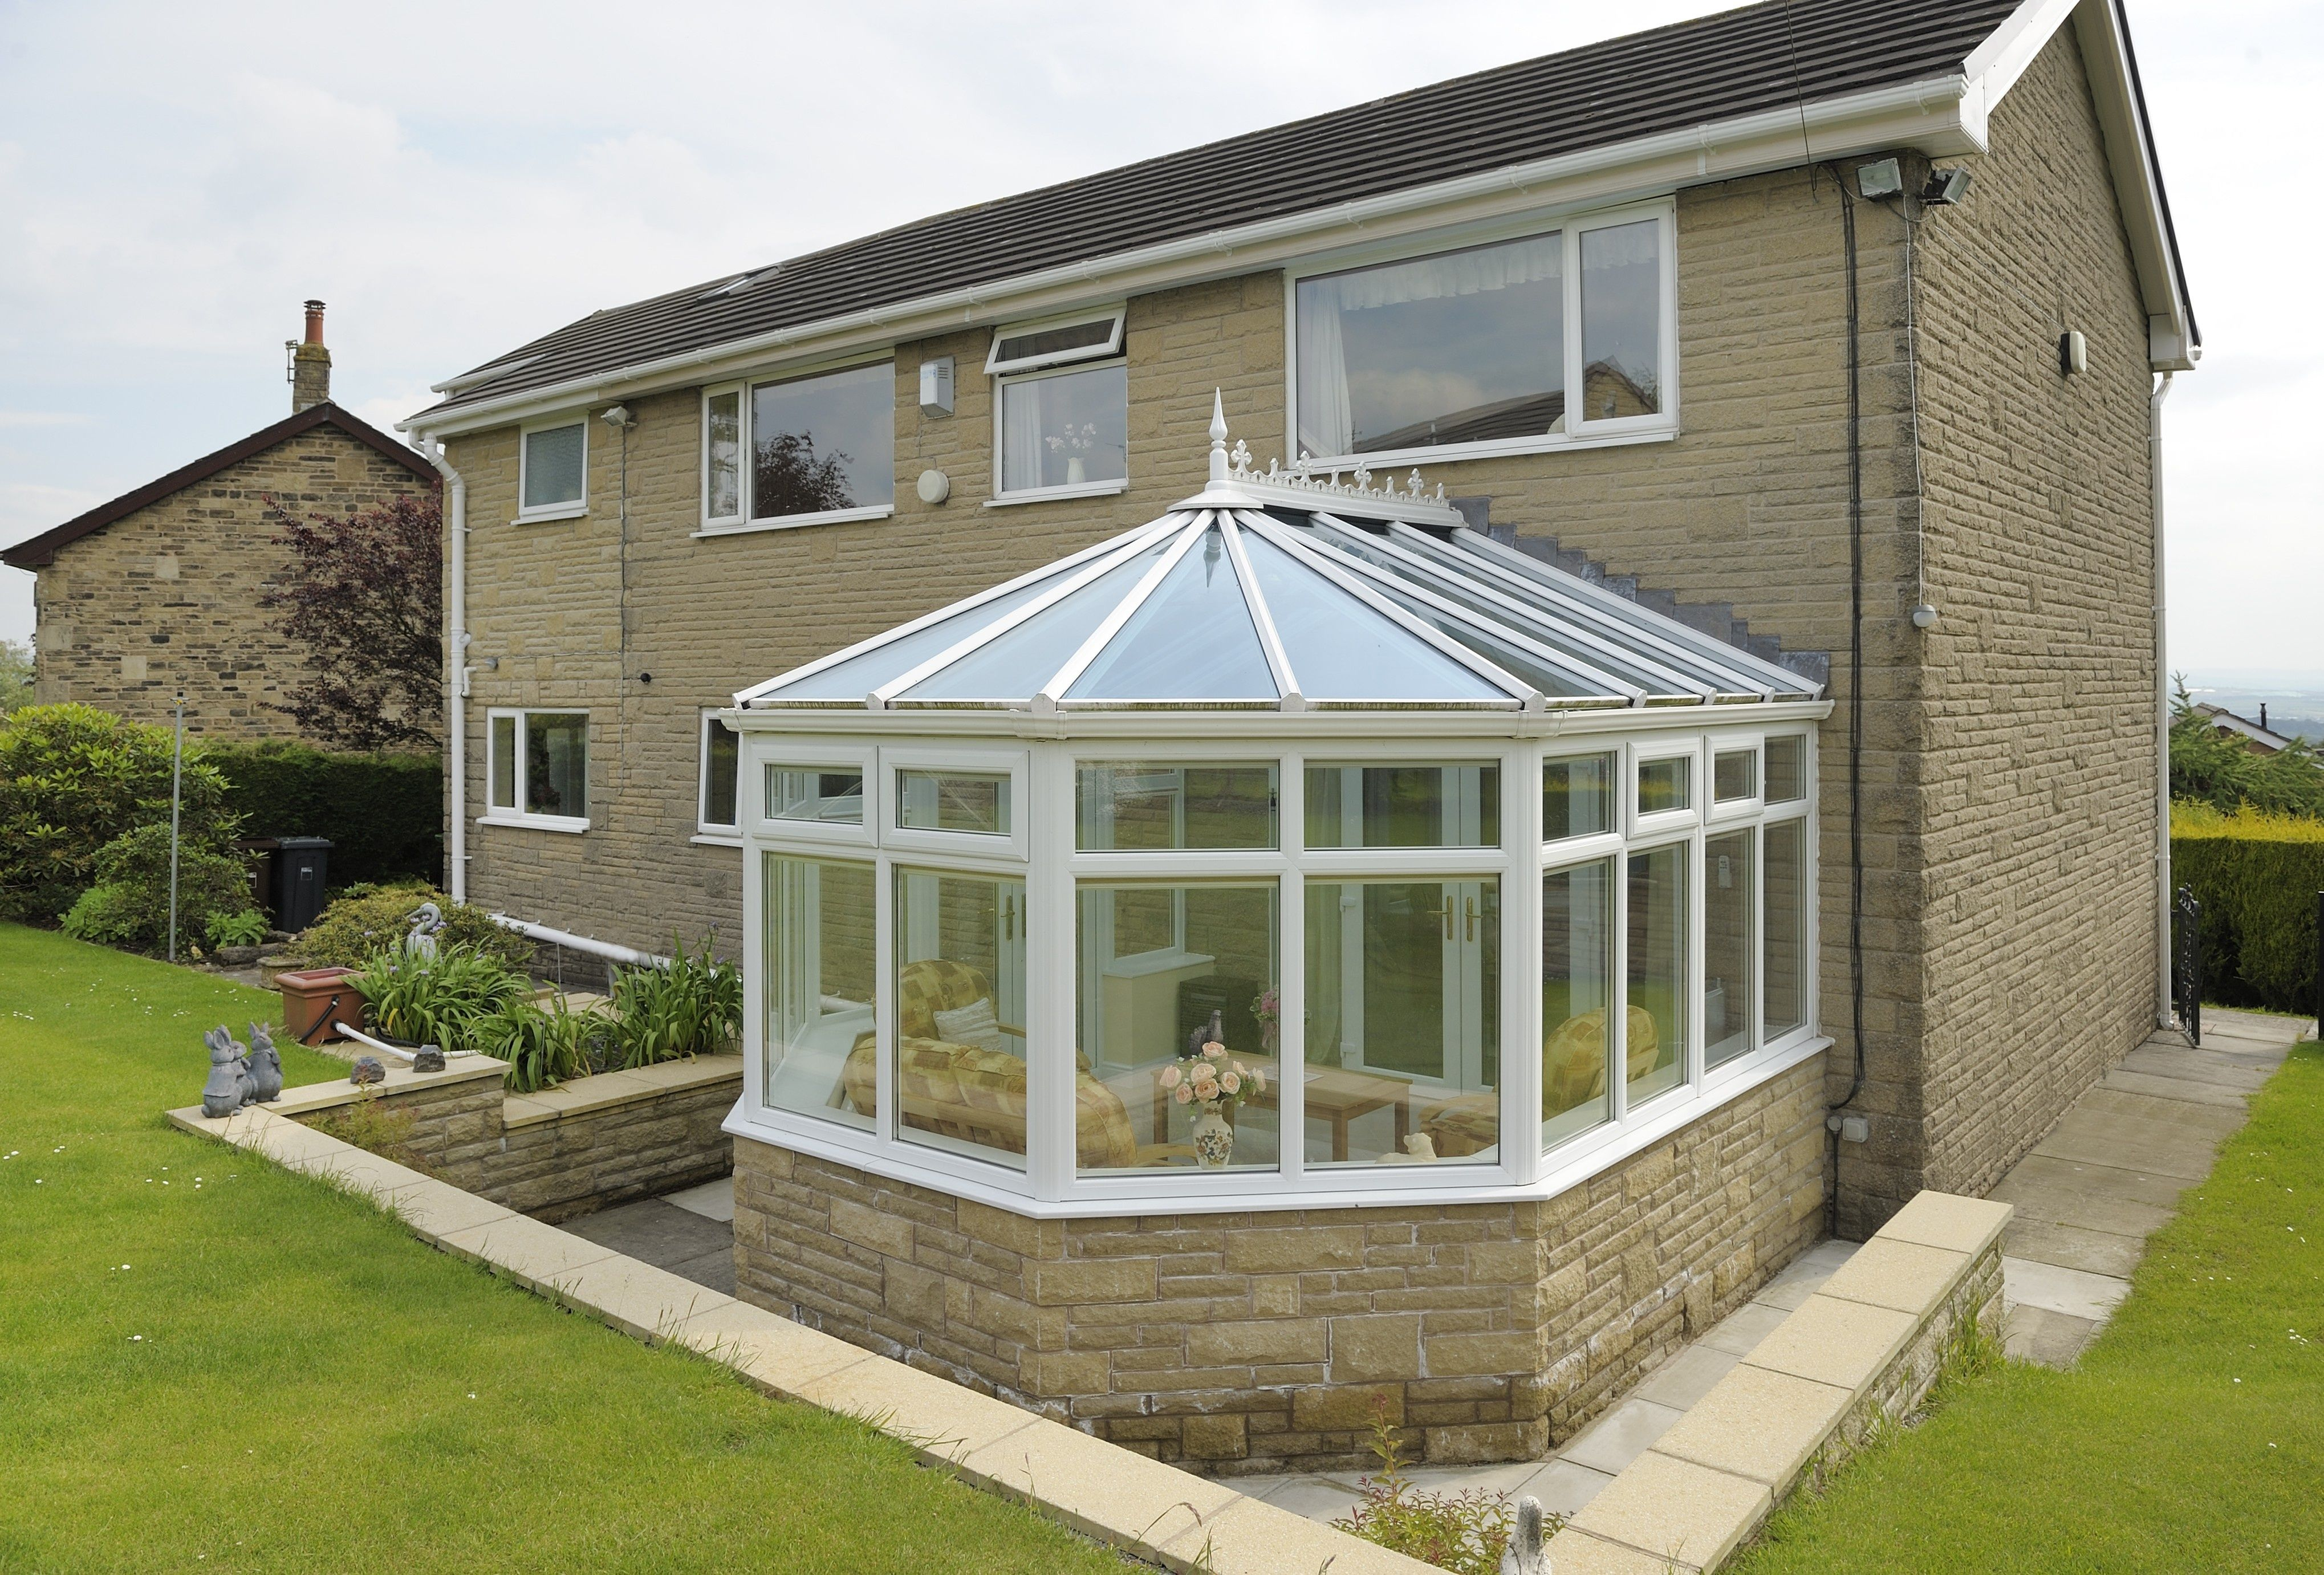 Victorian Conservatory Conservatory Roof Replacement Conservatory Roof Victorian Conservatory